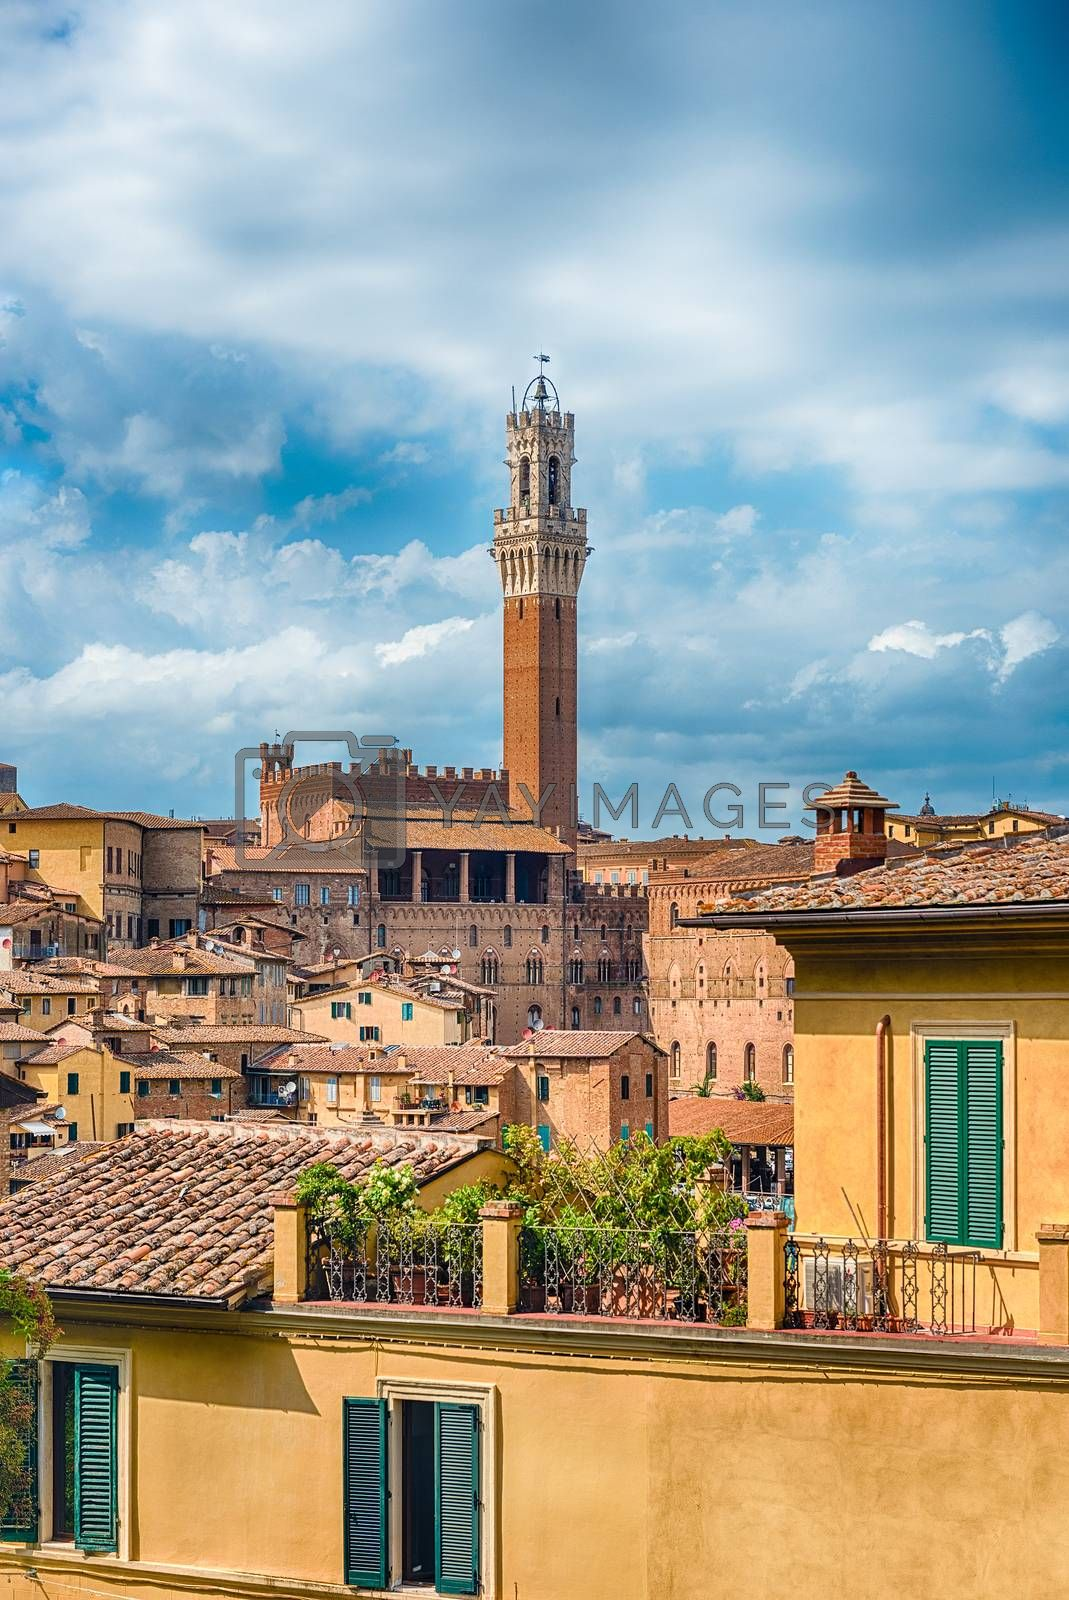 View over the picturesque city centre of Siena, one of the nation's most visited tourist attractions in Italy